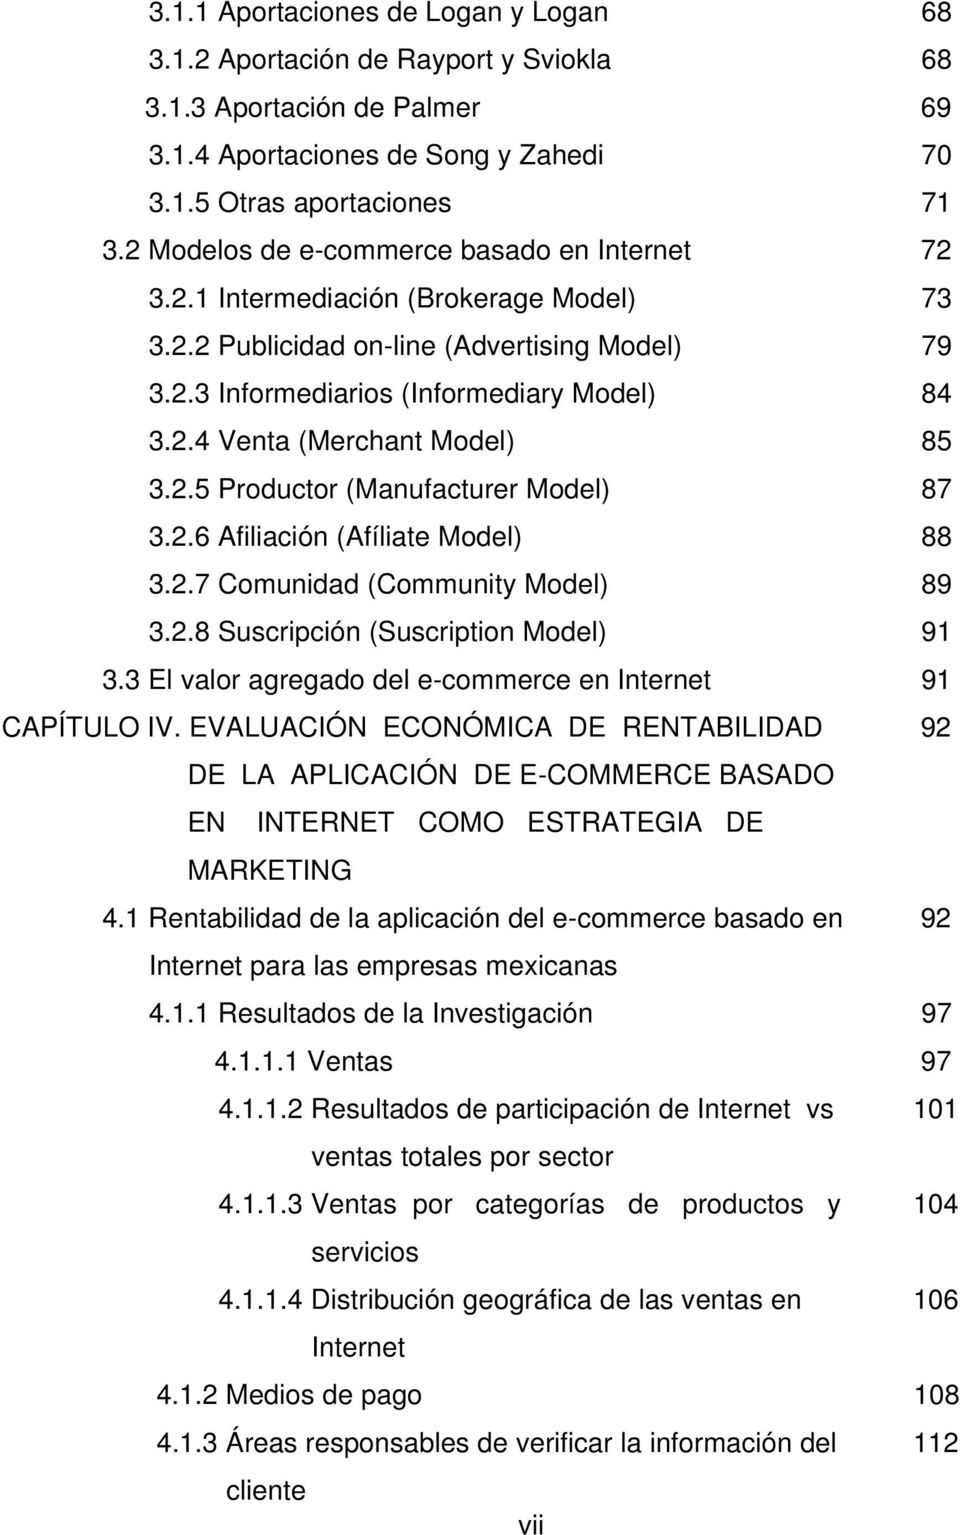 2.5 Productor (Manufacturer Model) 87 3.2.6 Afiliación (Afíliate Model) 88 3.2.7 Comunidad (Community Model) 89 3.2.8 Suscripción (Suscription Model) 91 3.